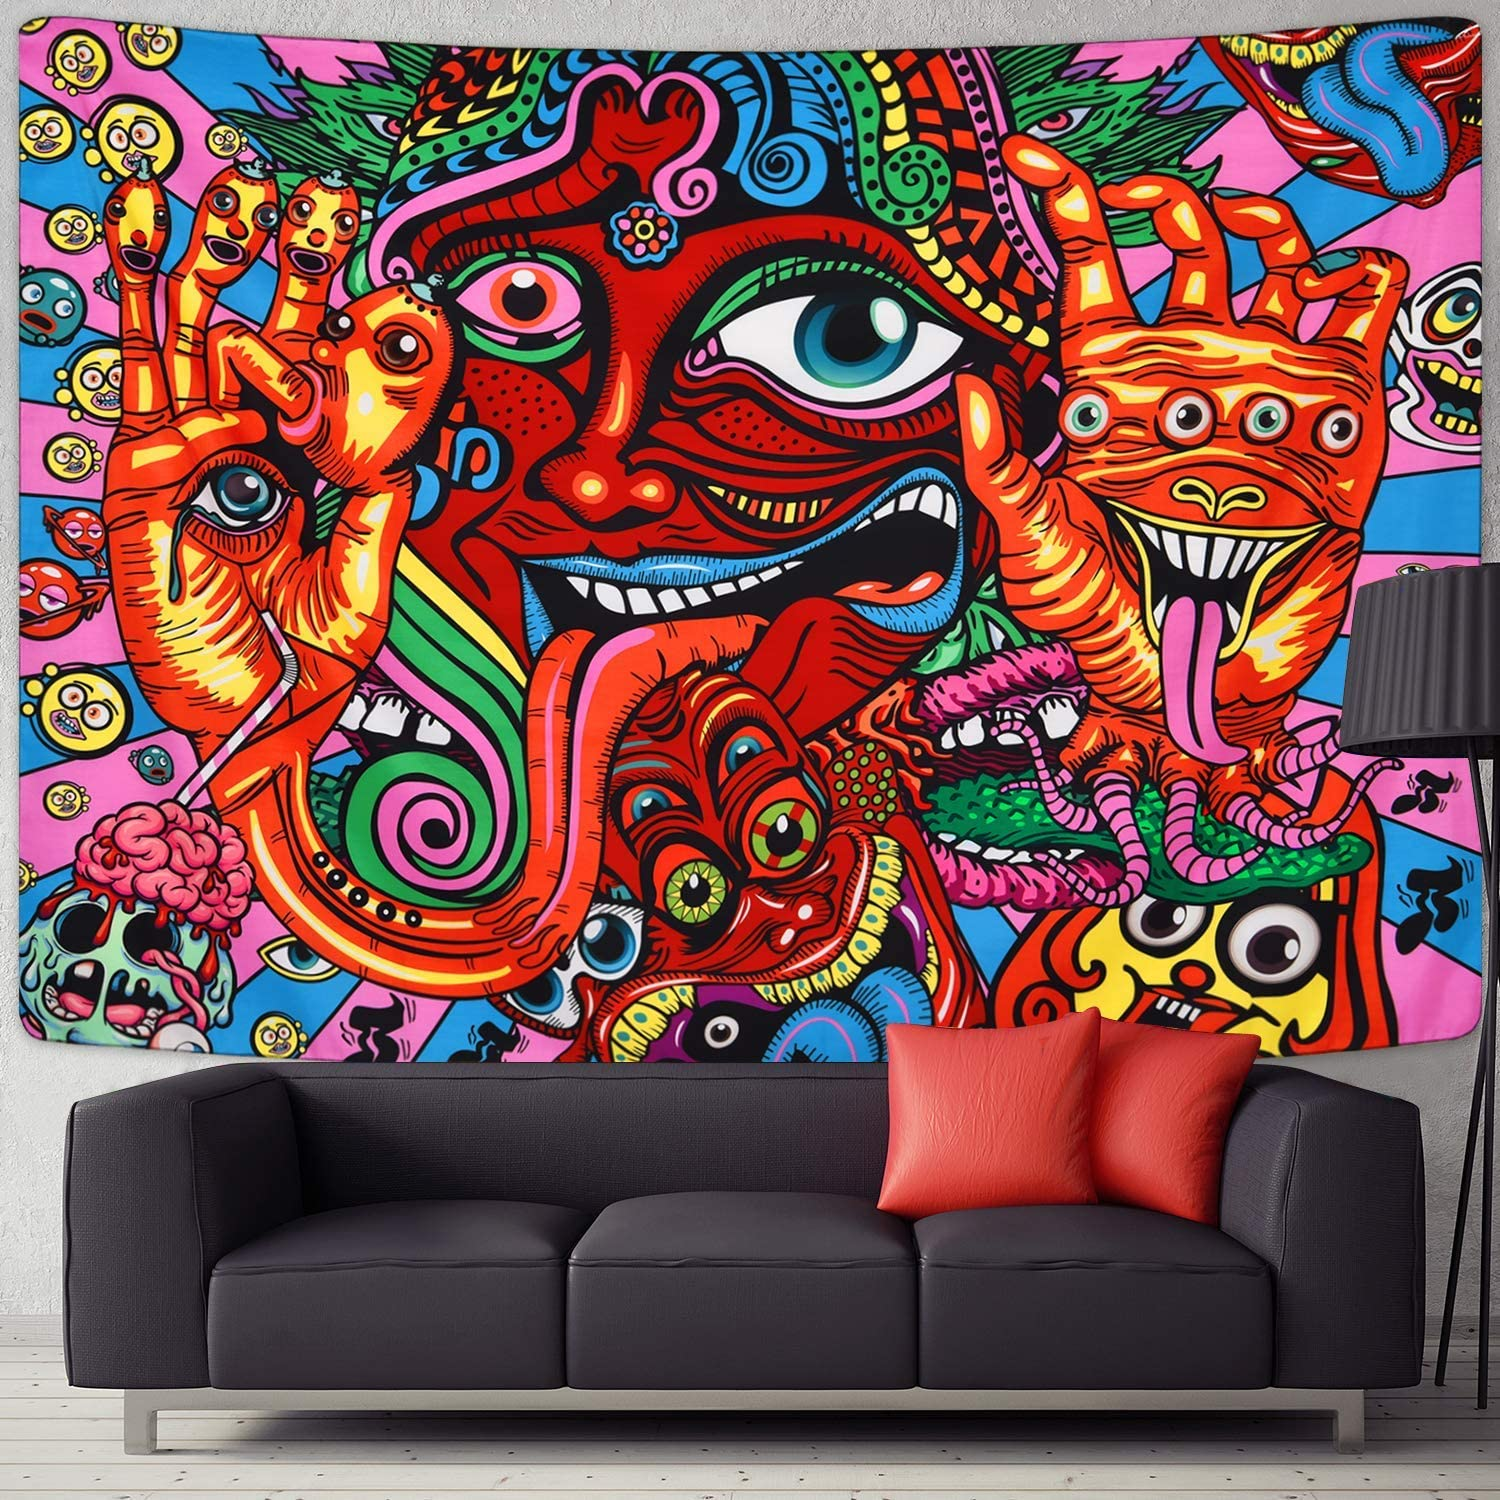 Lavay Psychedelic Arabesque Tapestry Bohemian Tapestry Wall Art Multiple Color Hippie Tapestry Abstract Tapestry Fantasy Fractal Tapestry For Meditation Bedroom Living Room Decor Multicolor 59 L X 79 W Amazon Ca Home Kitchen